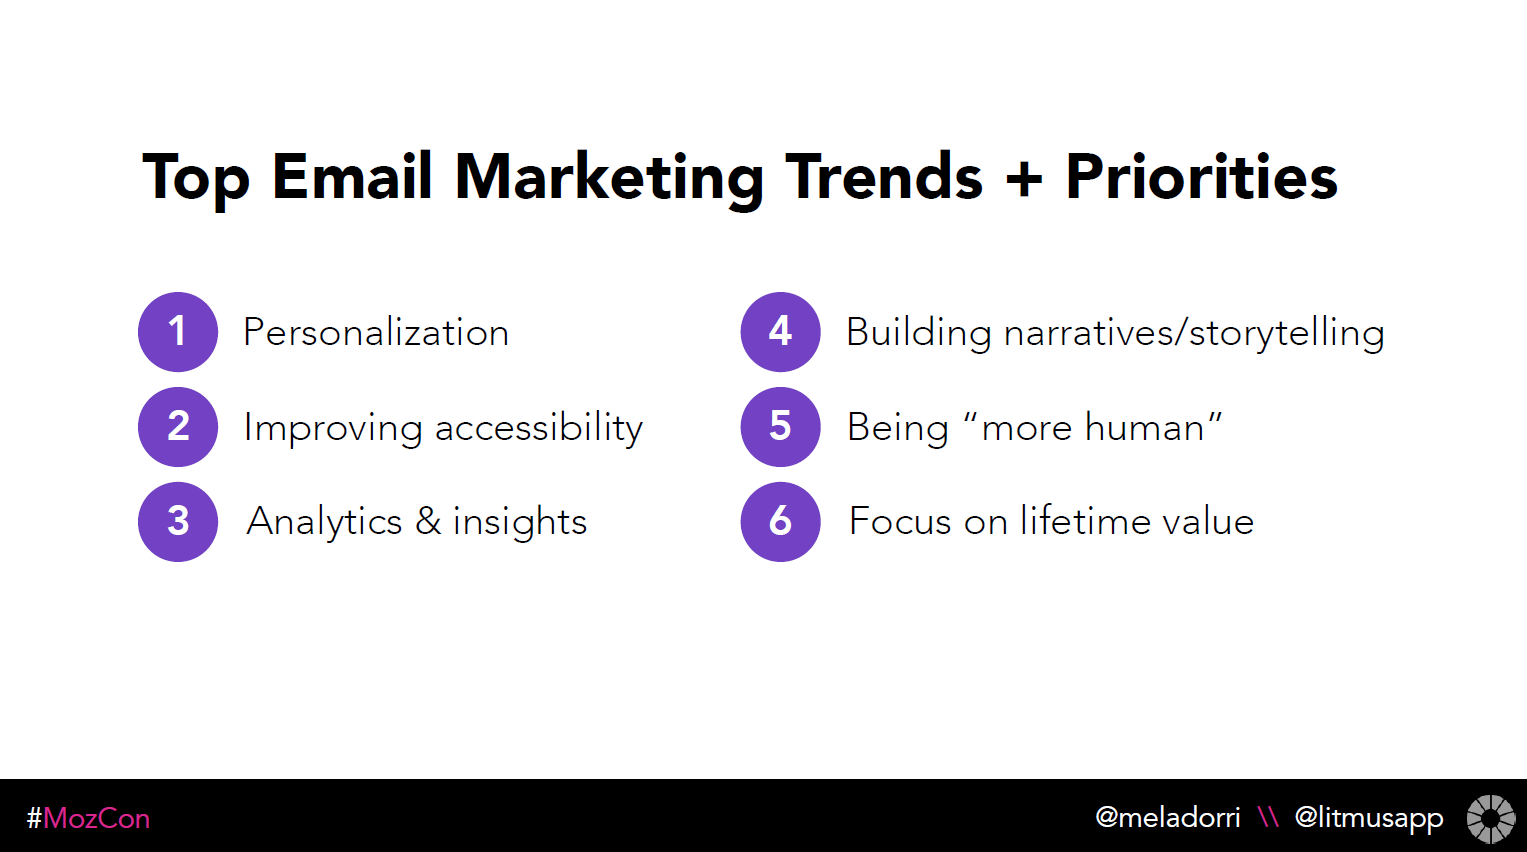 Top Email Marketing Trends and Priorities - Justine Jordan, MozCon 2018